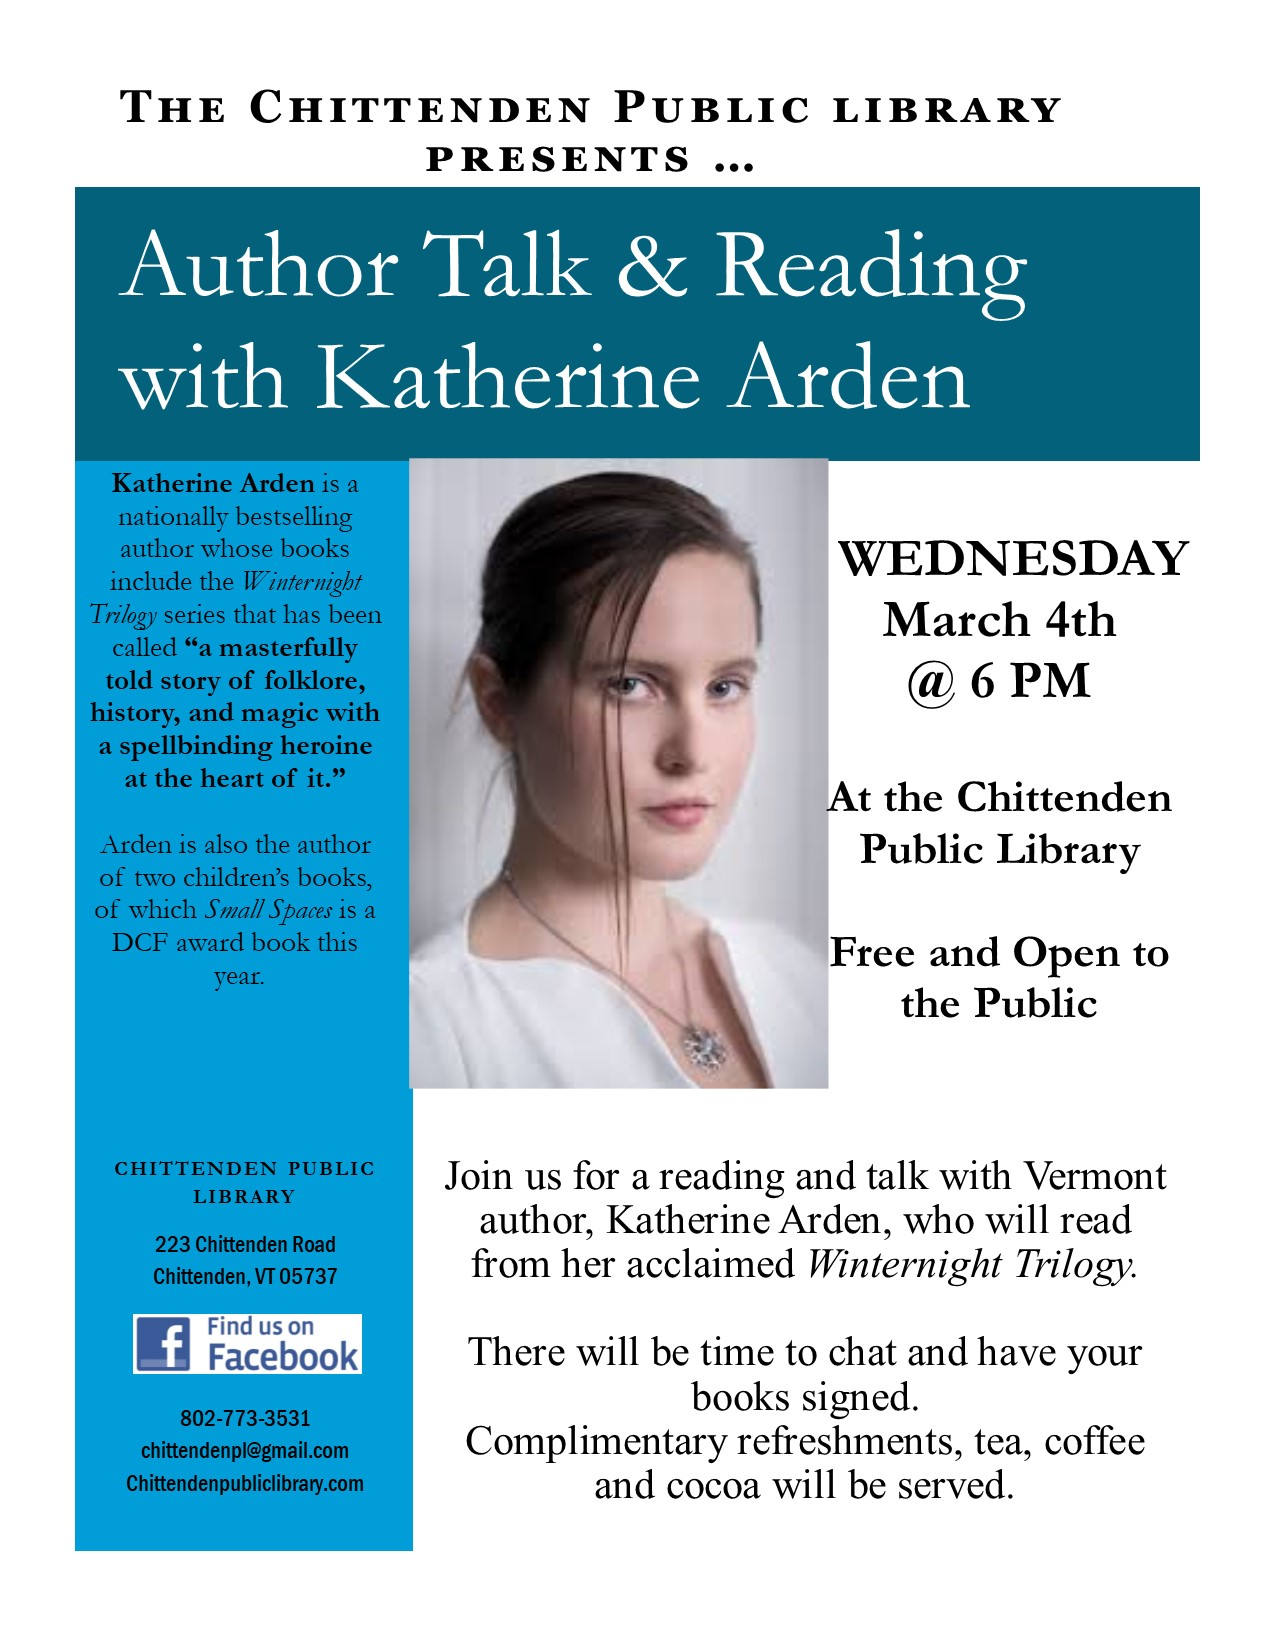 Katherine Arden author talk